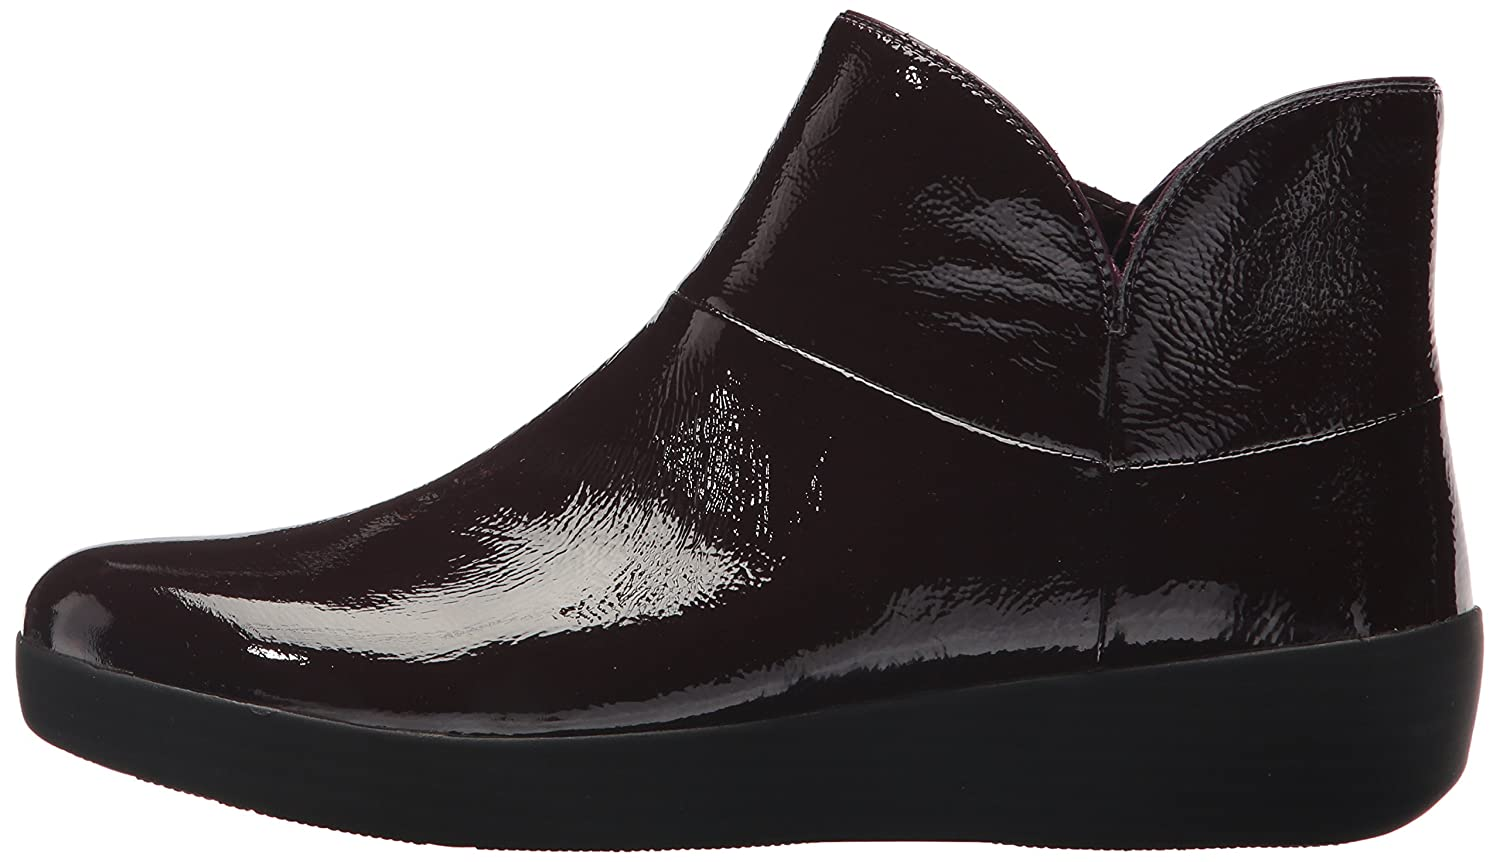 FitFlop Women's Supermod Ii Crinkle-Patent 10 Leather Ankle Boot B075G3CNCF 10 Crinkle-Patent B(M) US|Purple 291877